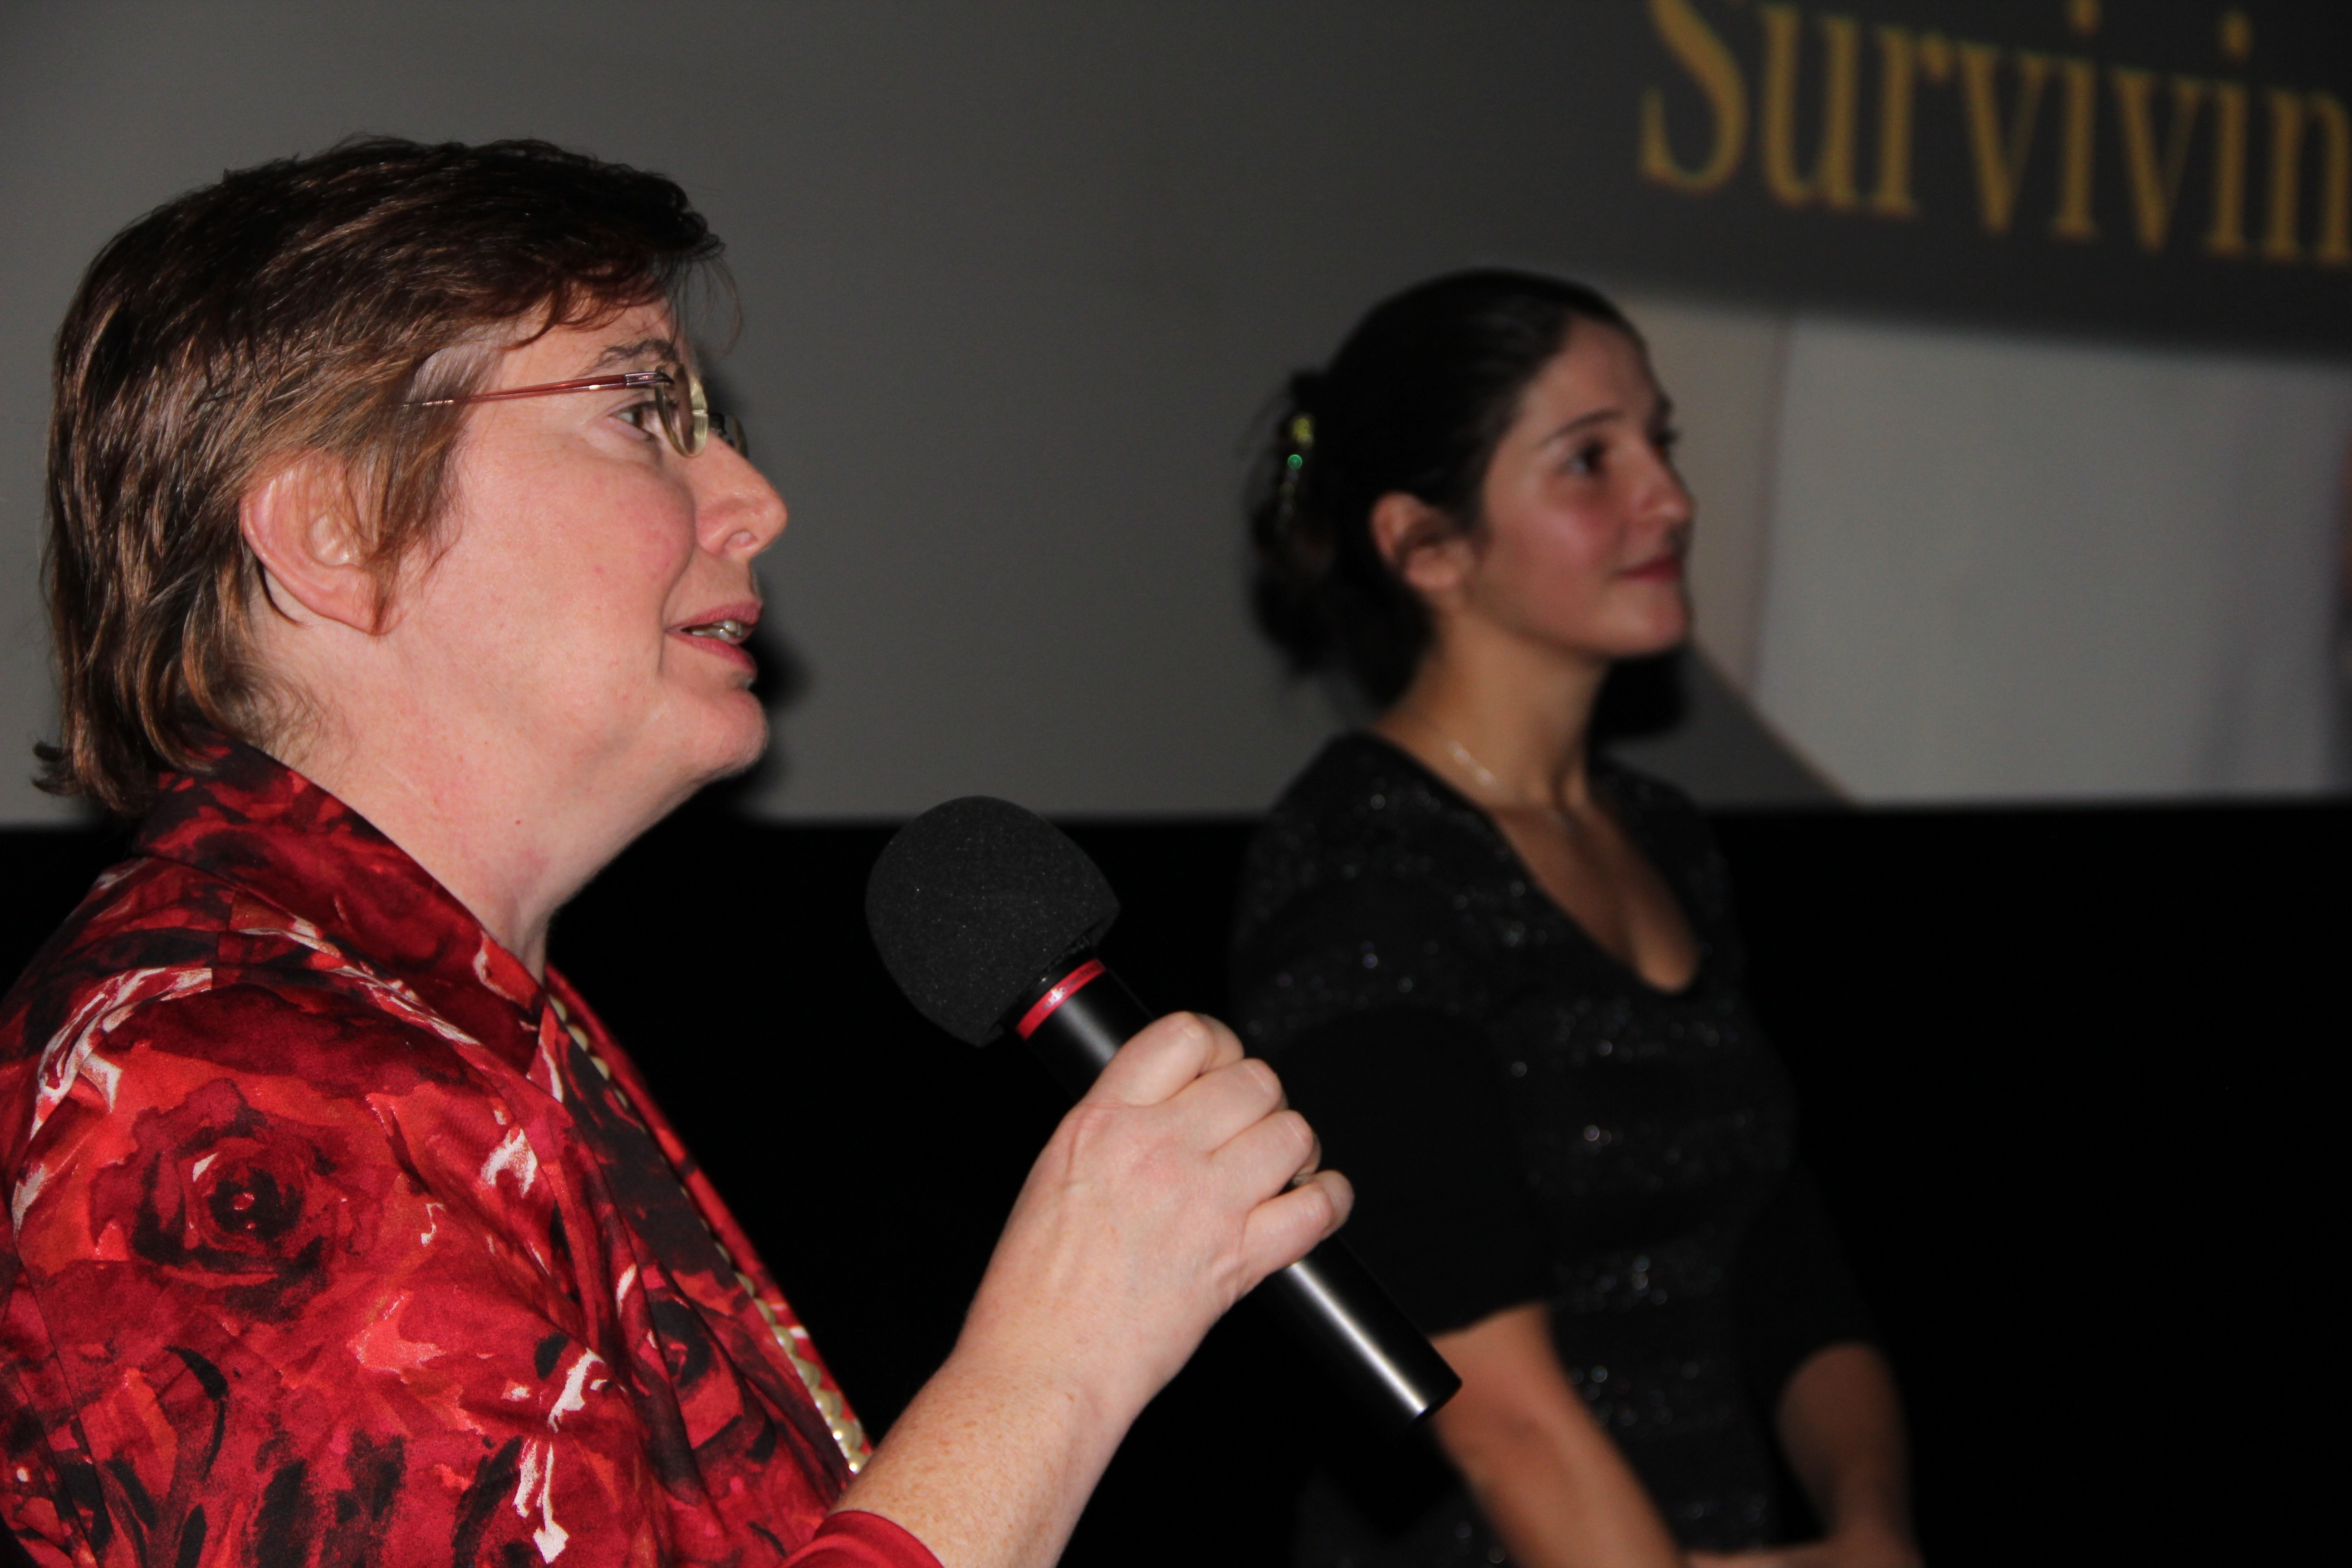 Writer/producer Mara Lesemann (left) and director Laura Thies at the q&a following the Munich screening.